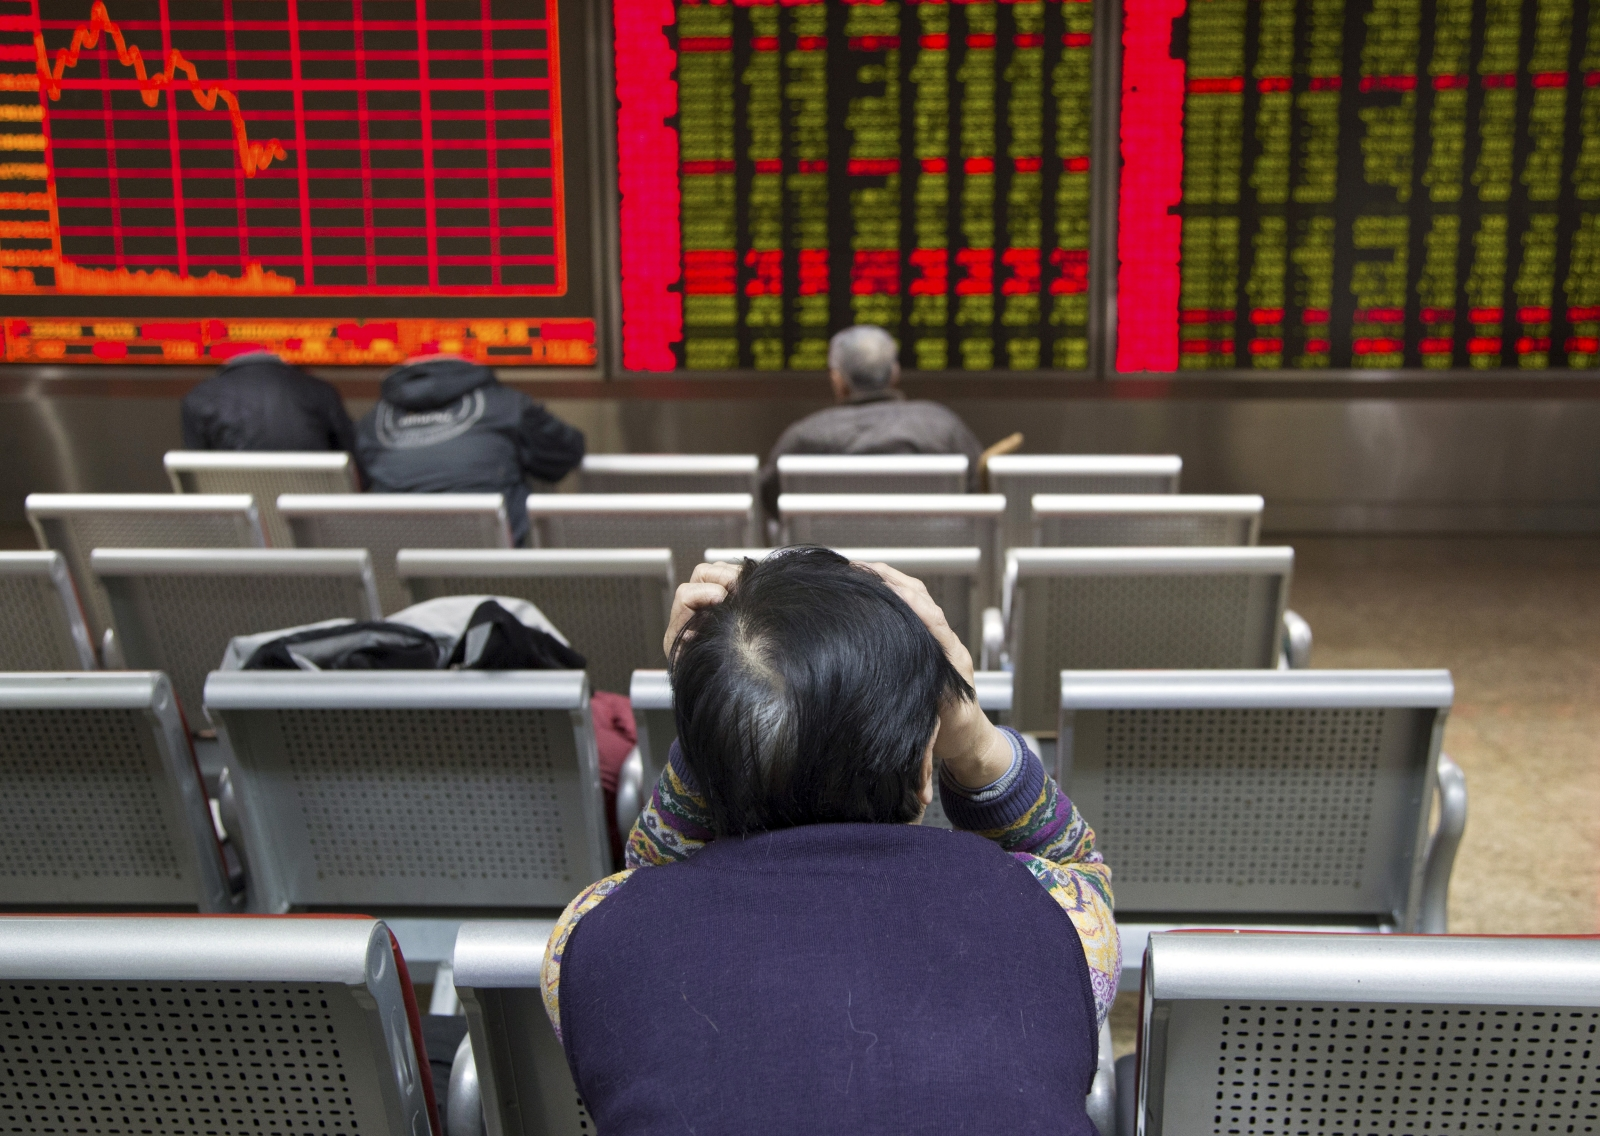 Asian markets: Shanghai Composite slips amid caution ahead of US June non-farm payrolls data